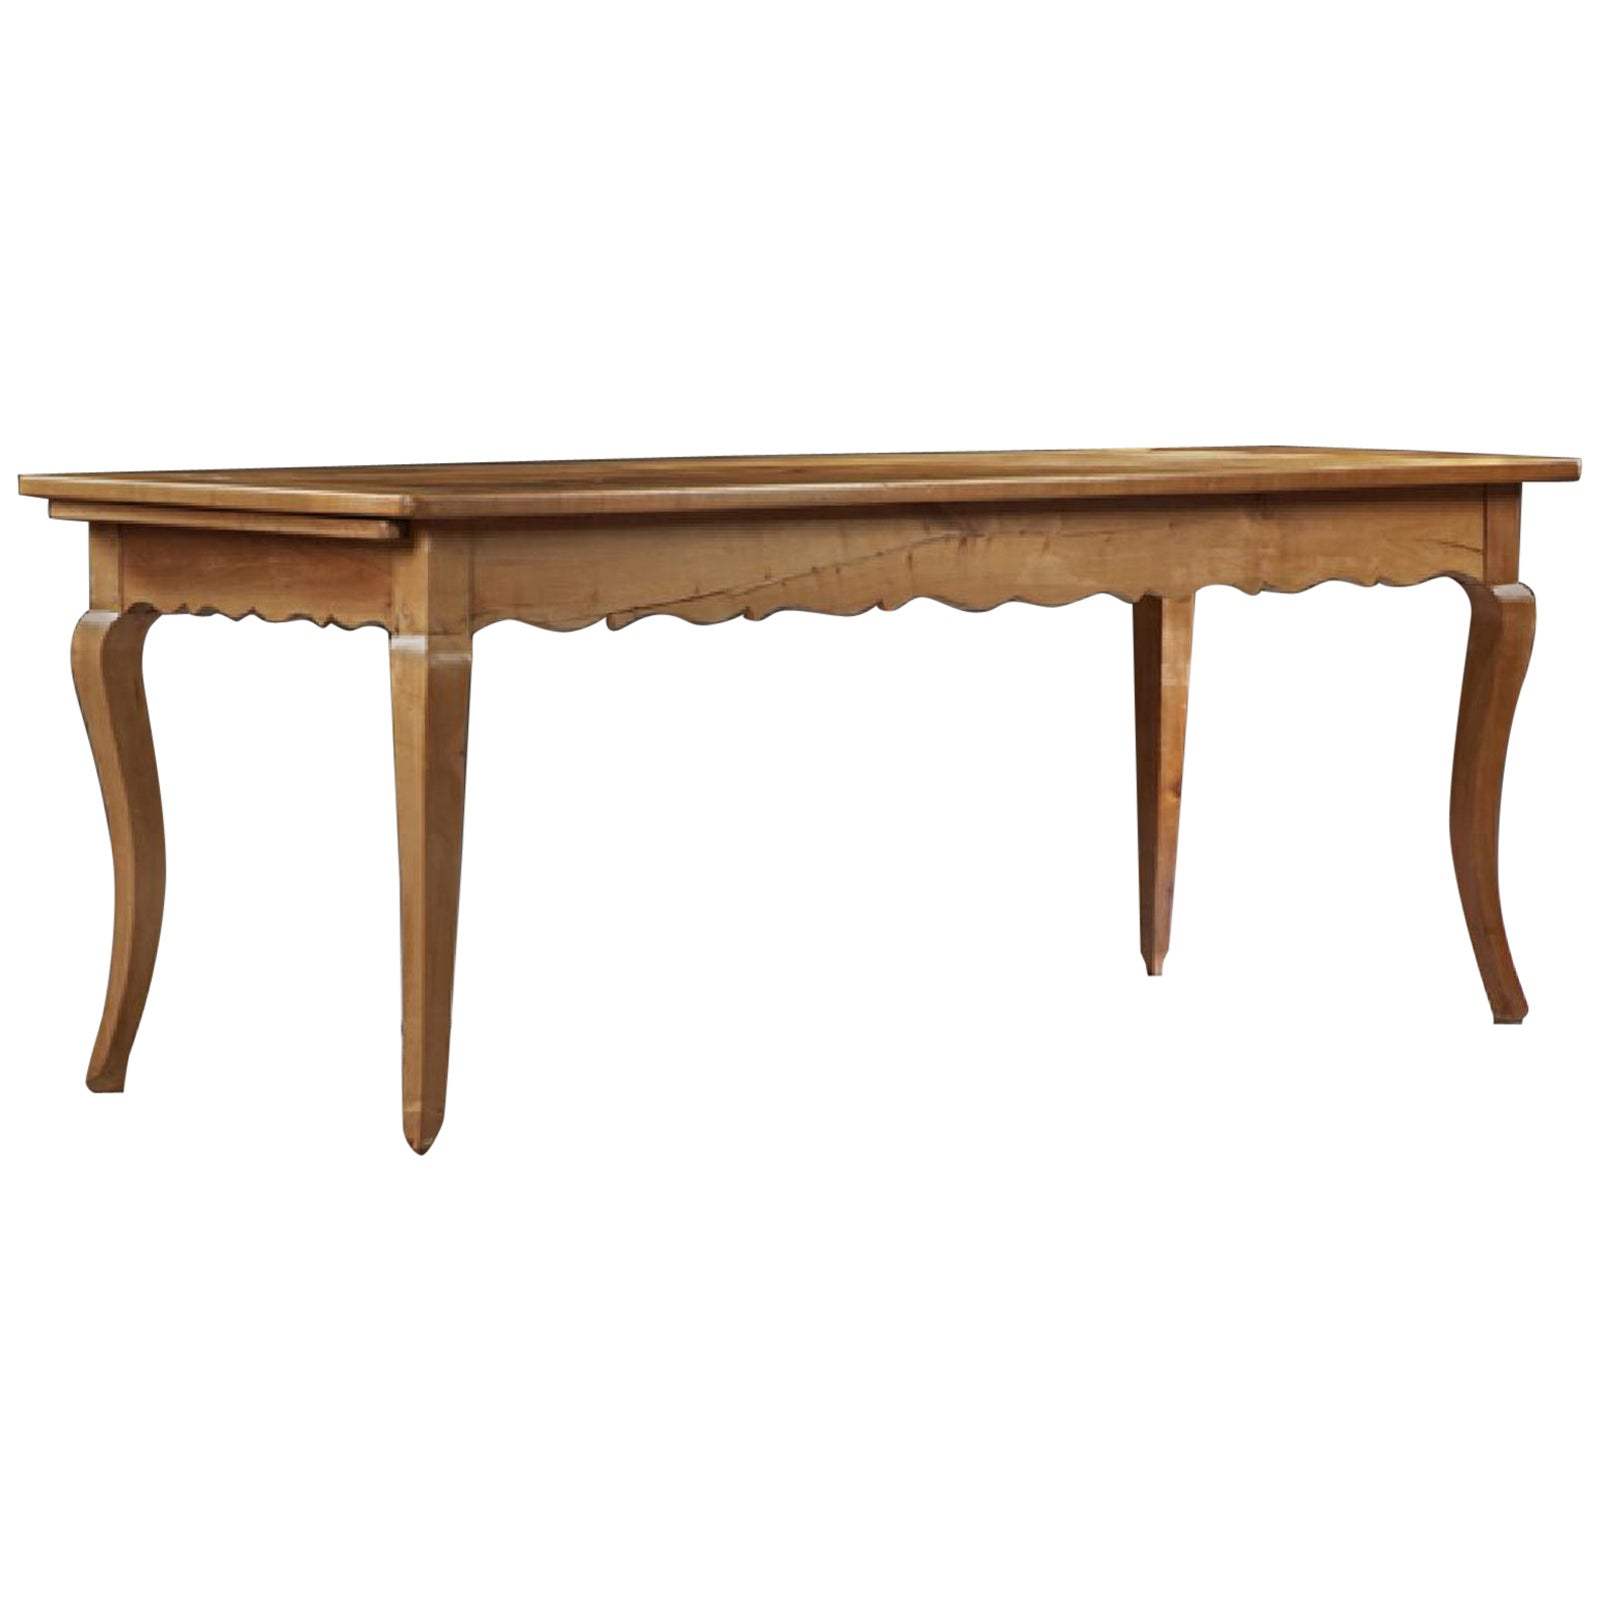 French, Louis XV Style Fruitwood Farm Table on Cabriole Legs, 19th Century